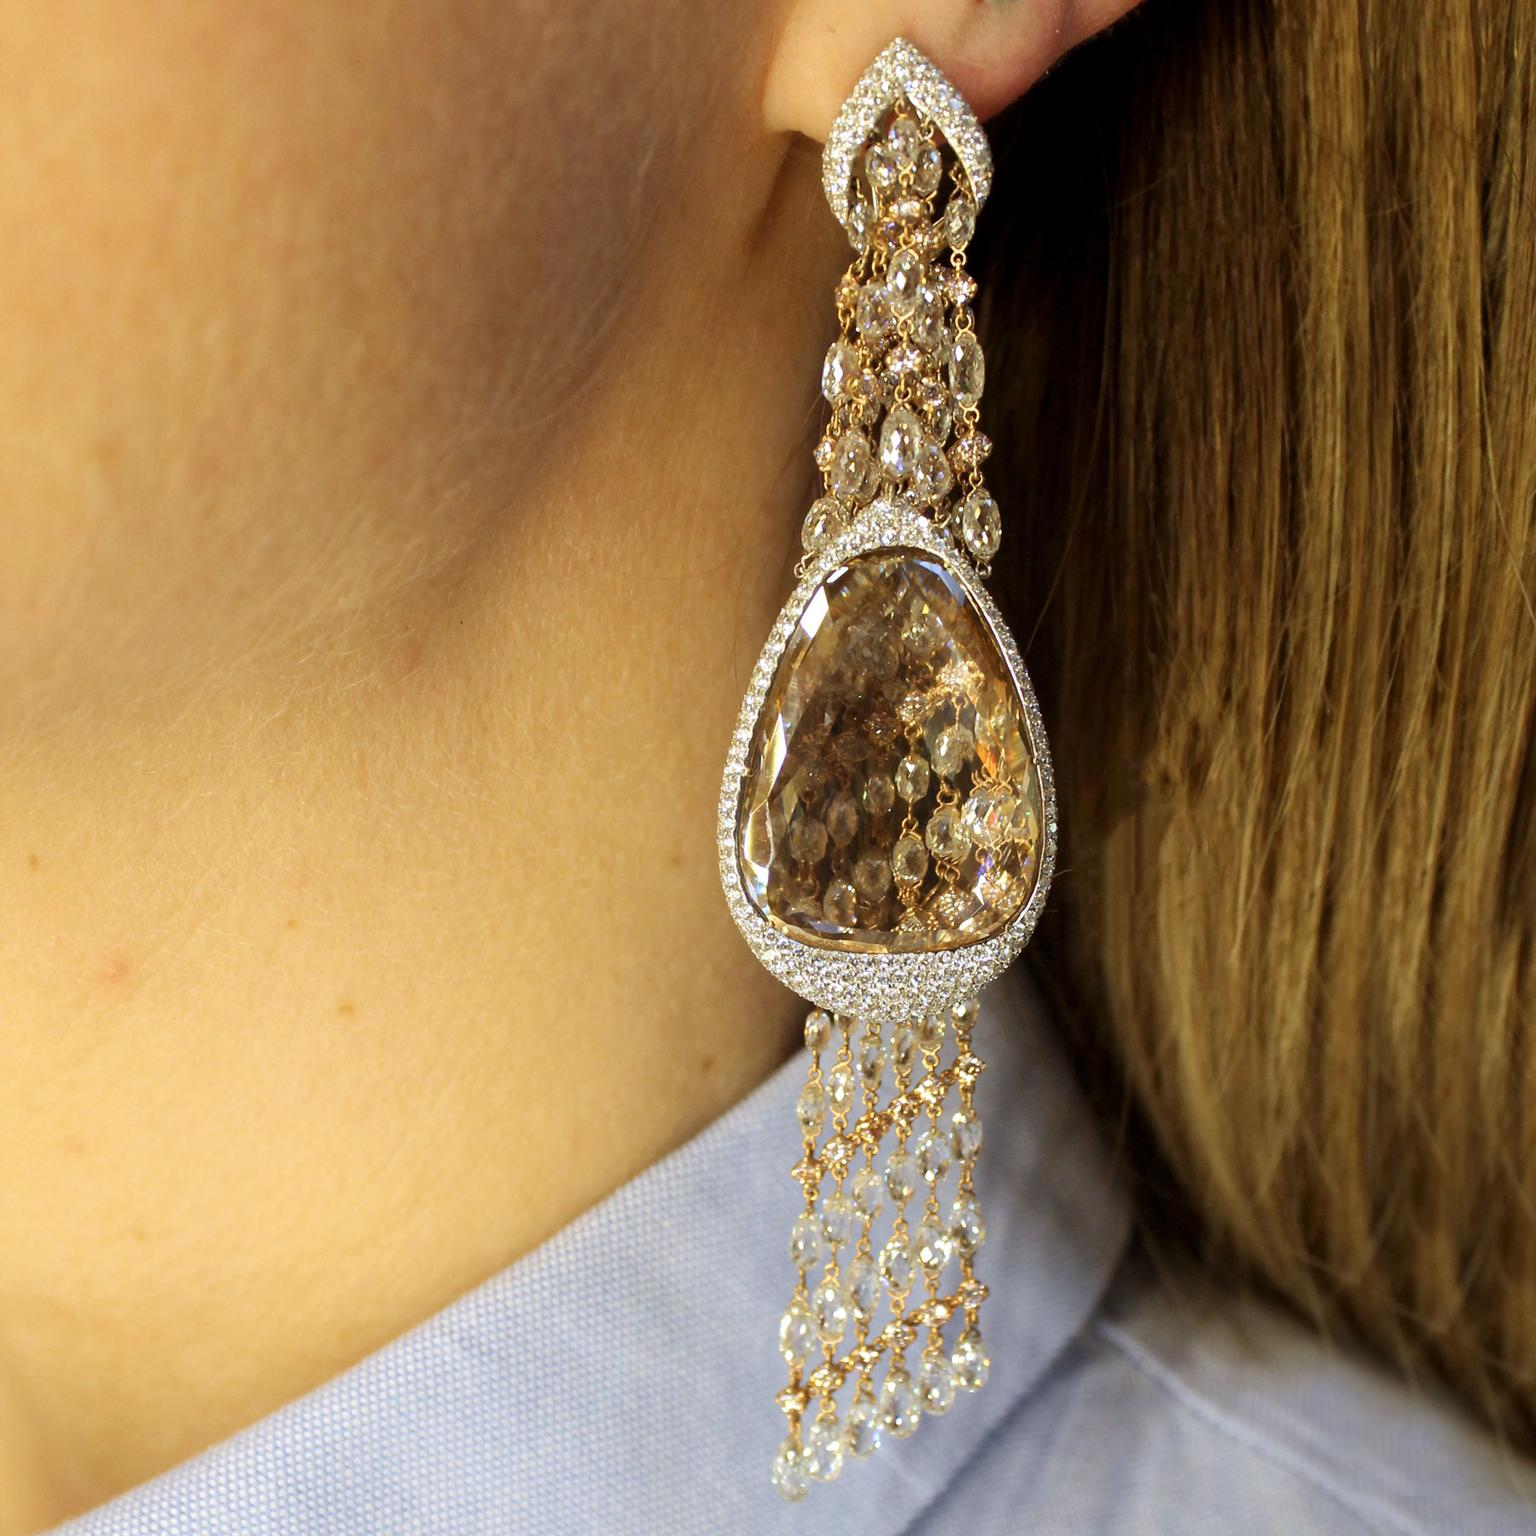 Moussaieff portrait diamond chandelier earrings on model